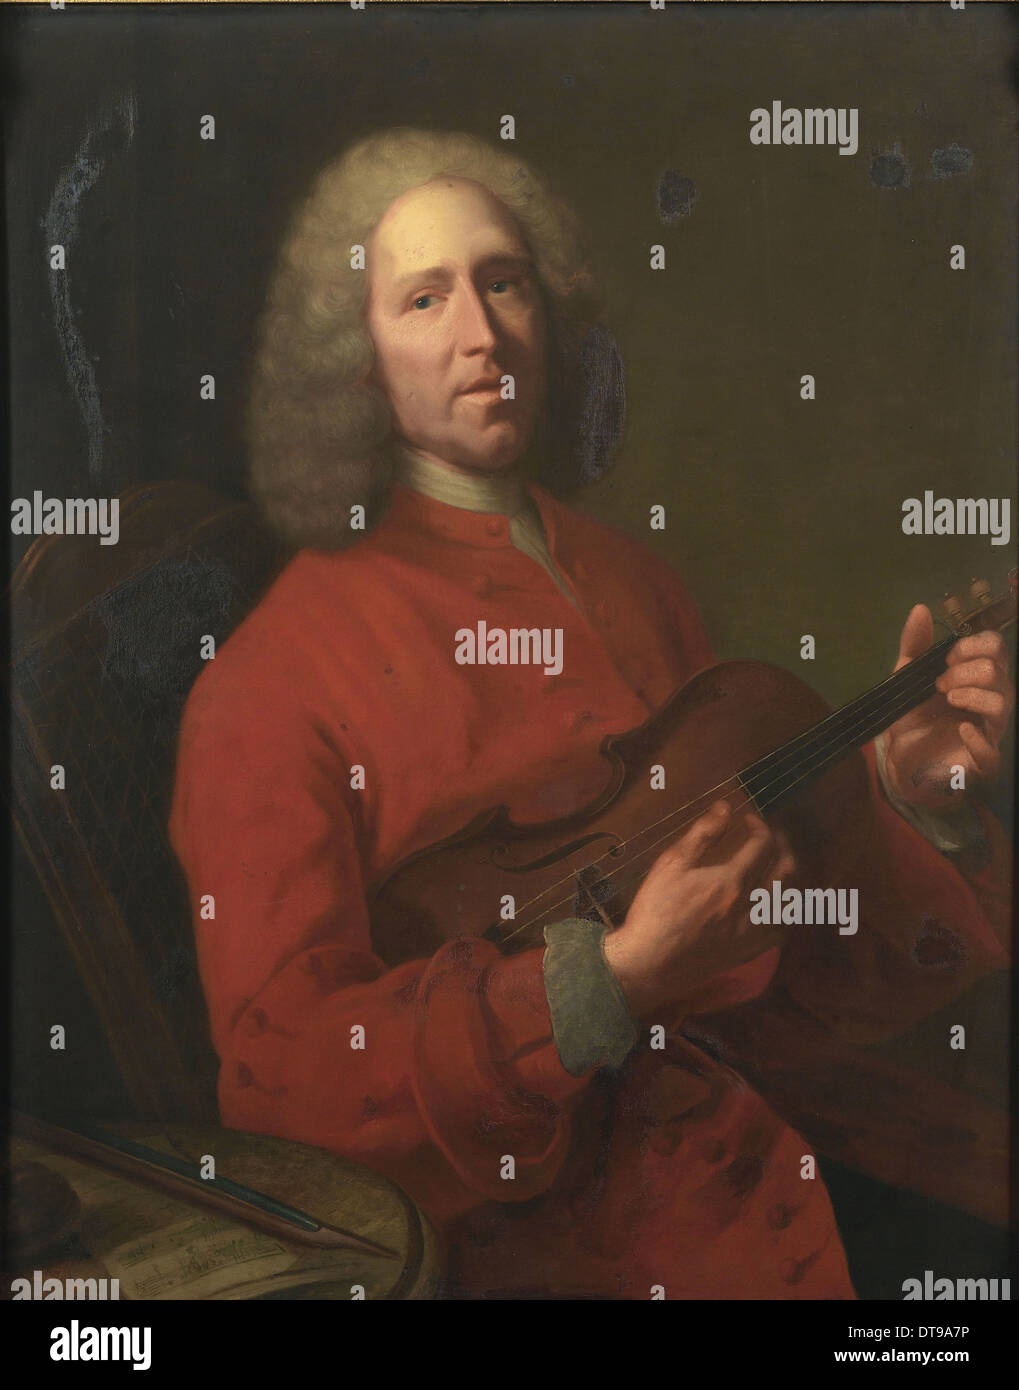 Portrait of the composer Jean-Philippe Rameau (1683-1764), 1728. Artist: Aved, Jacques-Andrè Joseph (1702-1766) - Stock Image